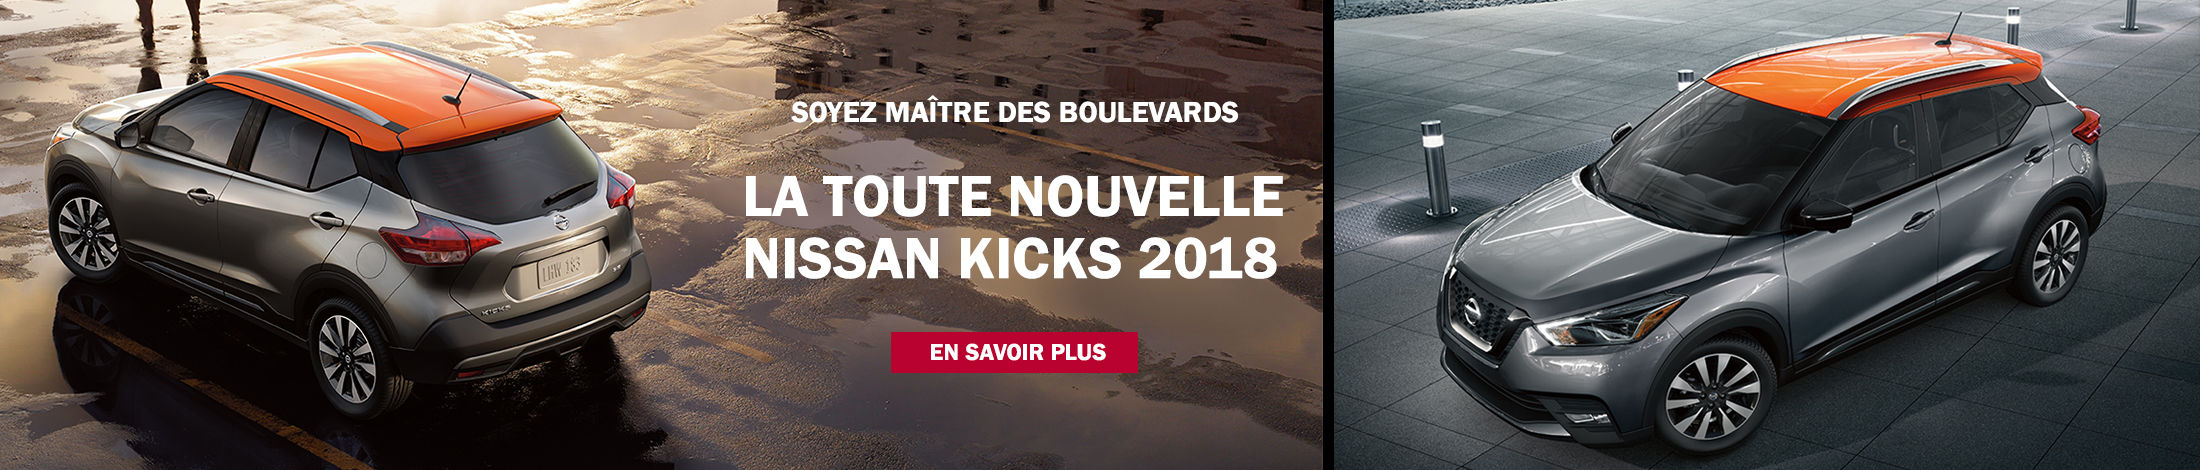 Nissan Kicks 2018 - Informations